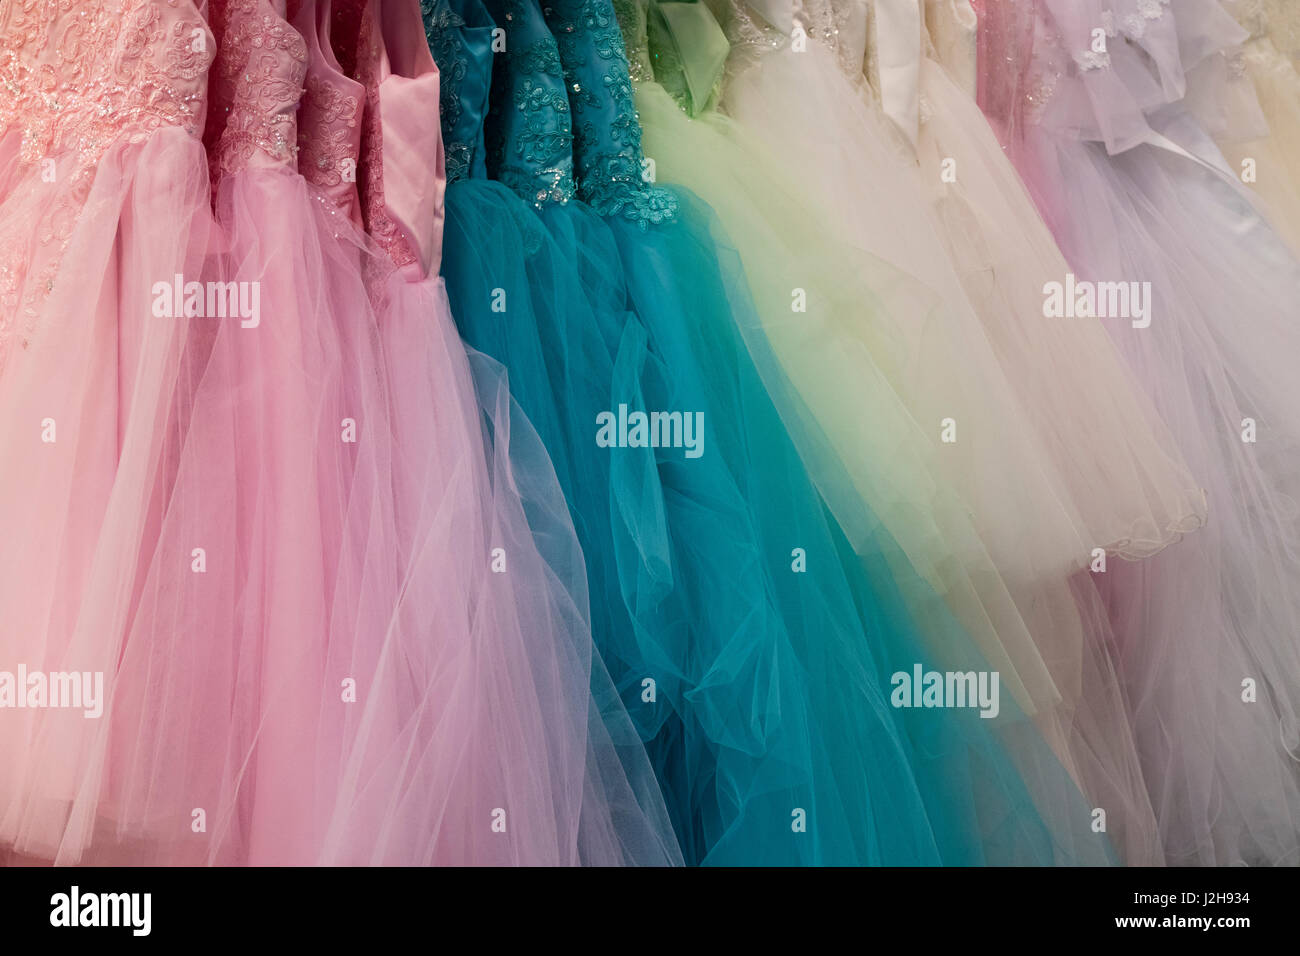 Party Dresses Stock Photos & Party Dresses Stock Images - Alamy